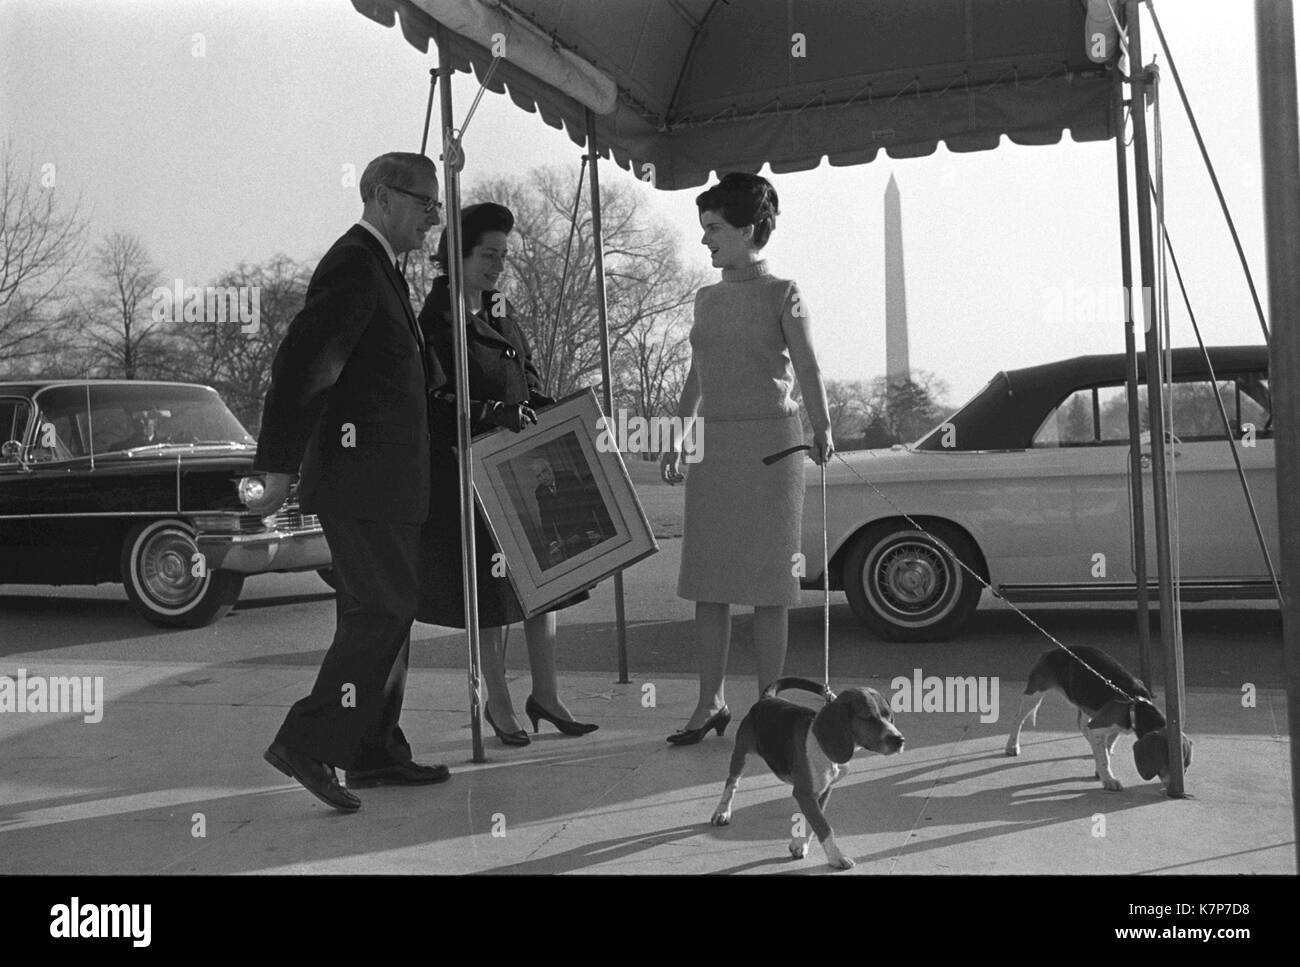 Lady Bird Johnson (center) and her daughter Luci Baines Johnson, holding the leashes of the family dogs (right), Stock Photo